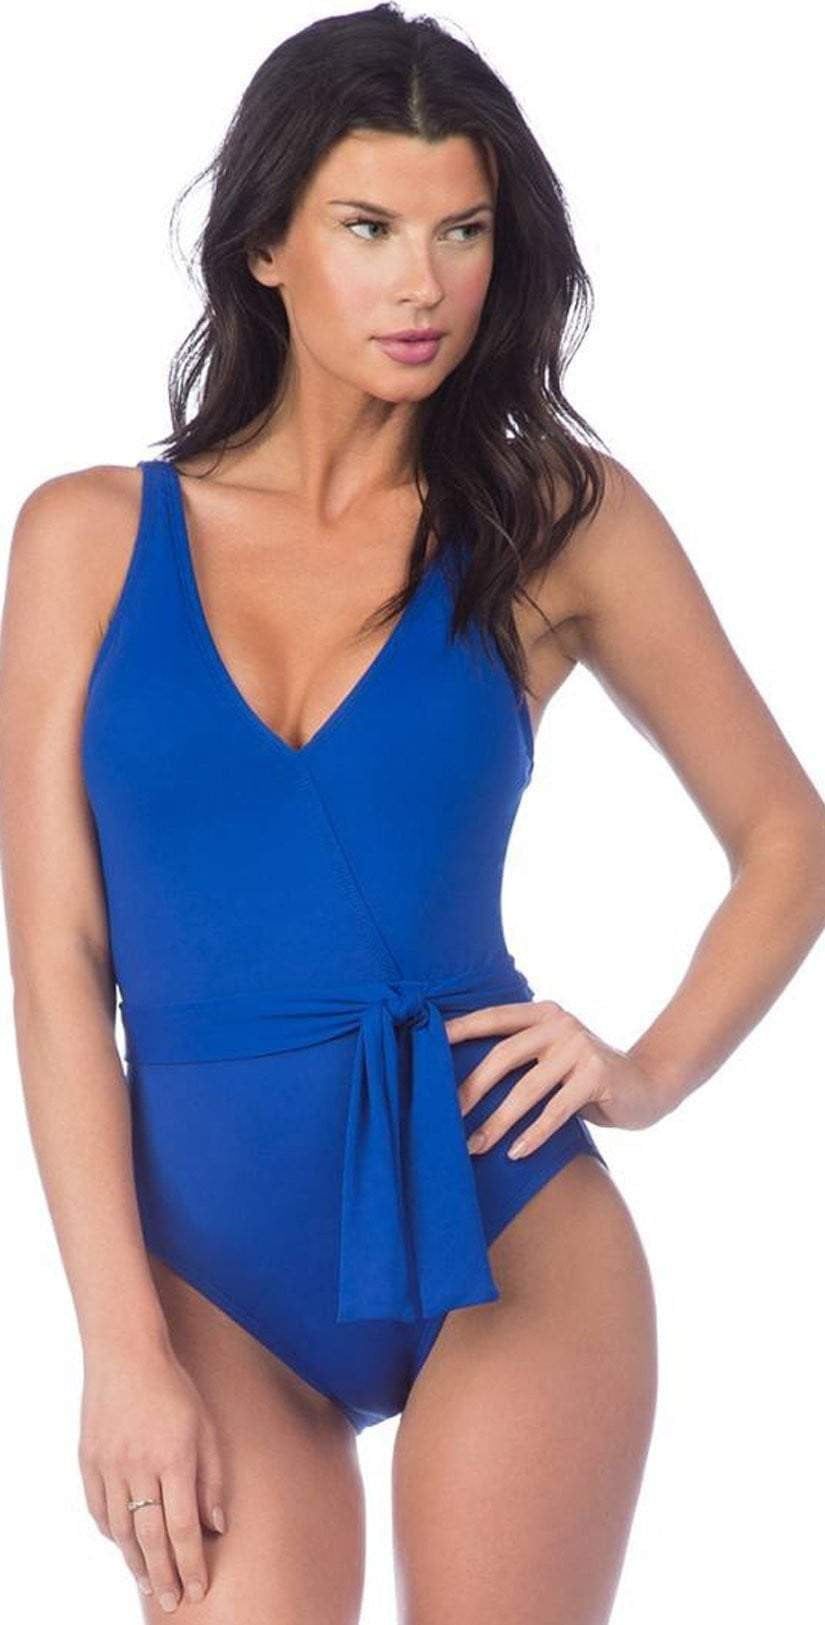 La Blanca Island Goddess Surplice One-Piece in Apollo Blue Swimsuit LB8LA12-APB: